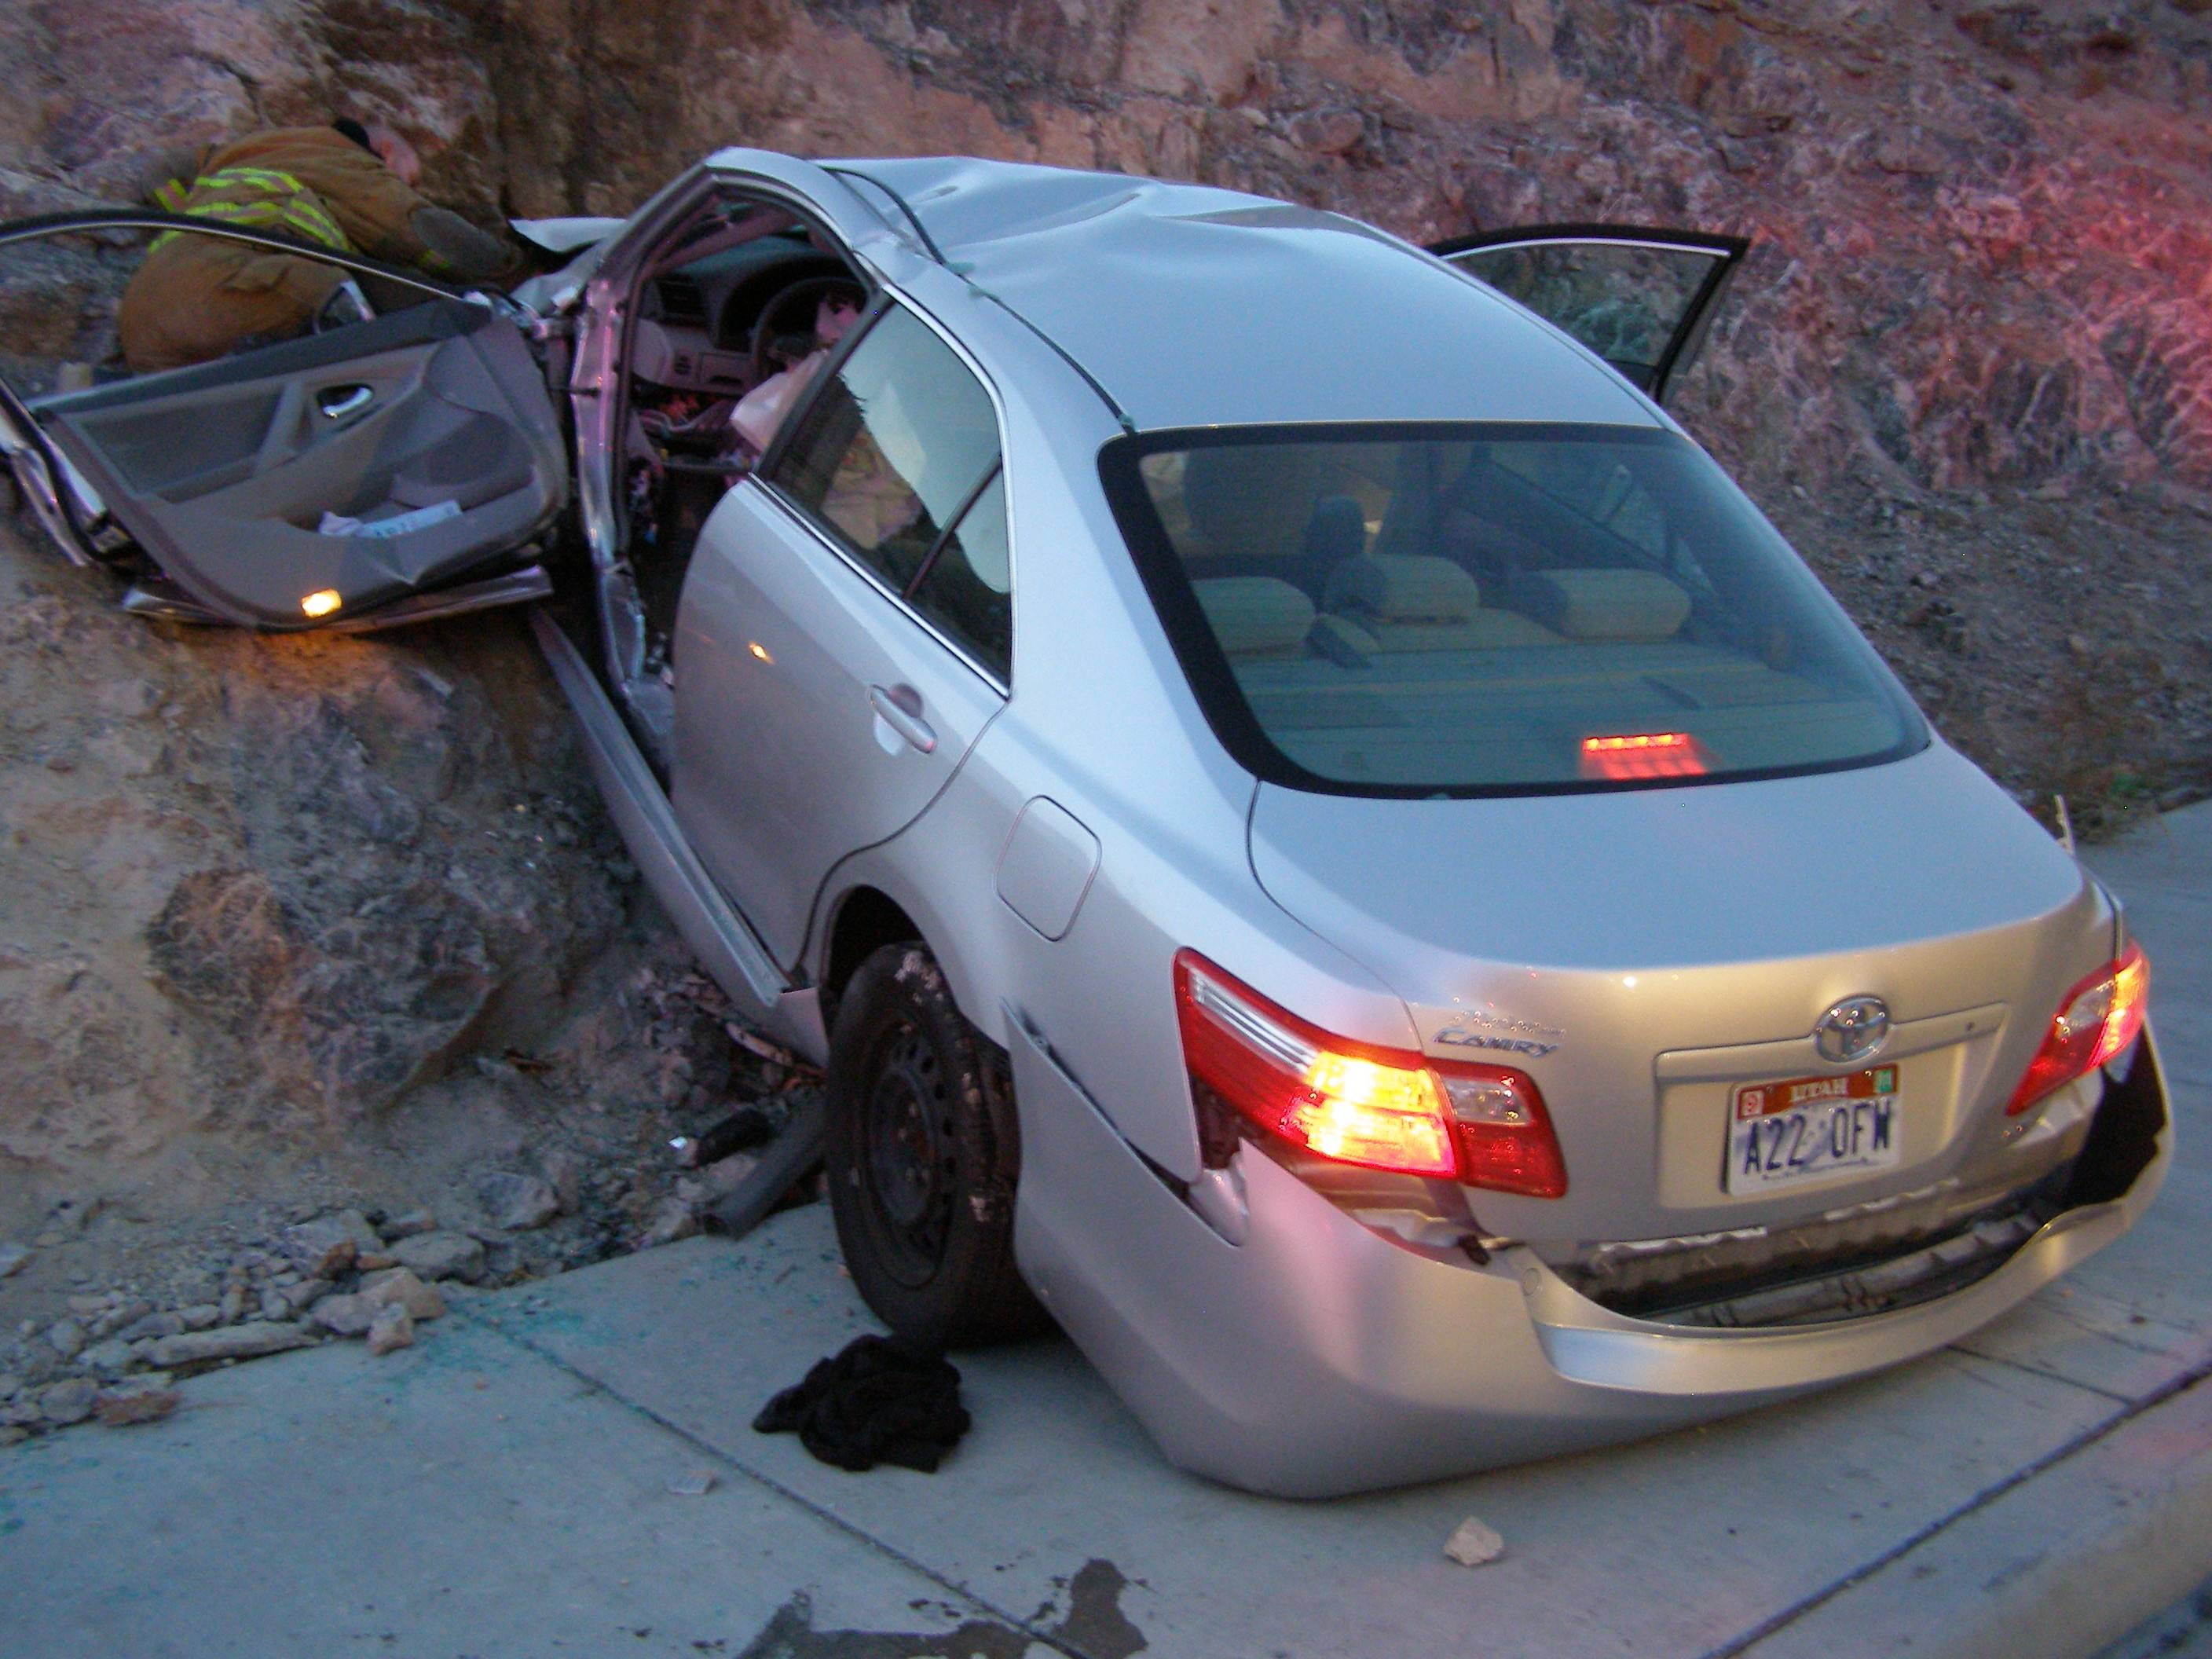 A Toyota Camry is shown after it crashed as it exited Interstate 80 in Wendover, Utah, in this Nov. 5, 2010 file photo. Police suspect problems with the Camry's accelerator or floor mat caused the crash that left two people dead and two others injured.